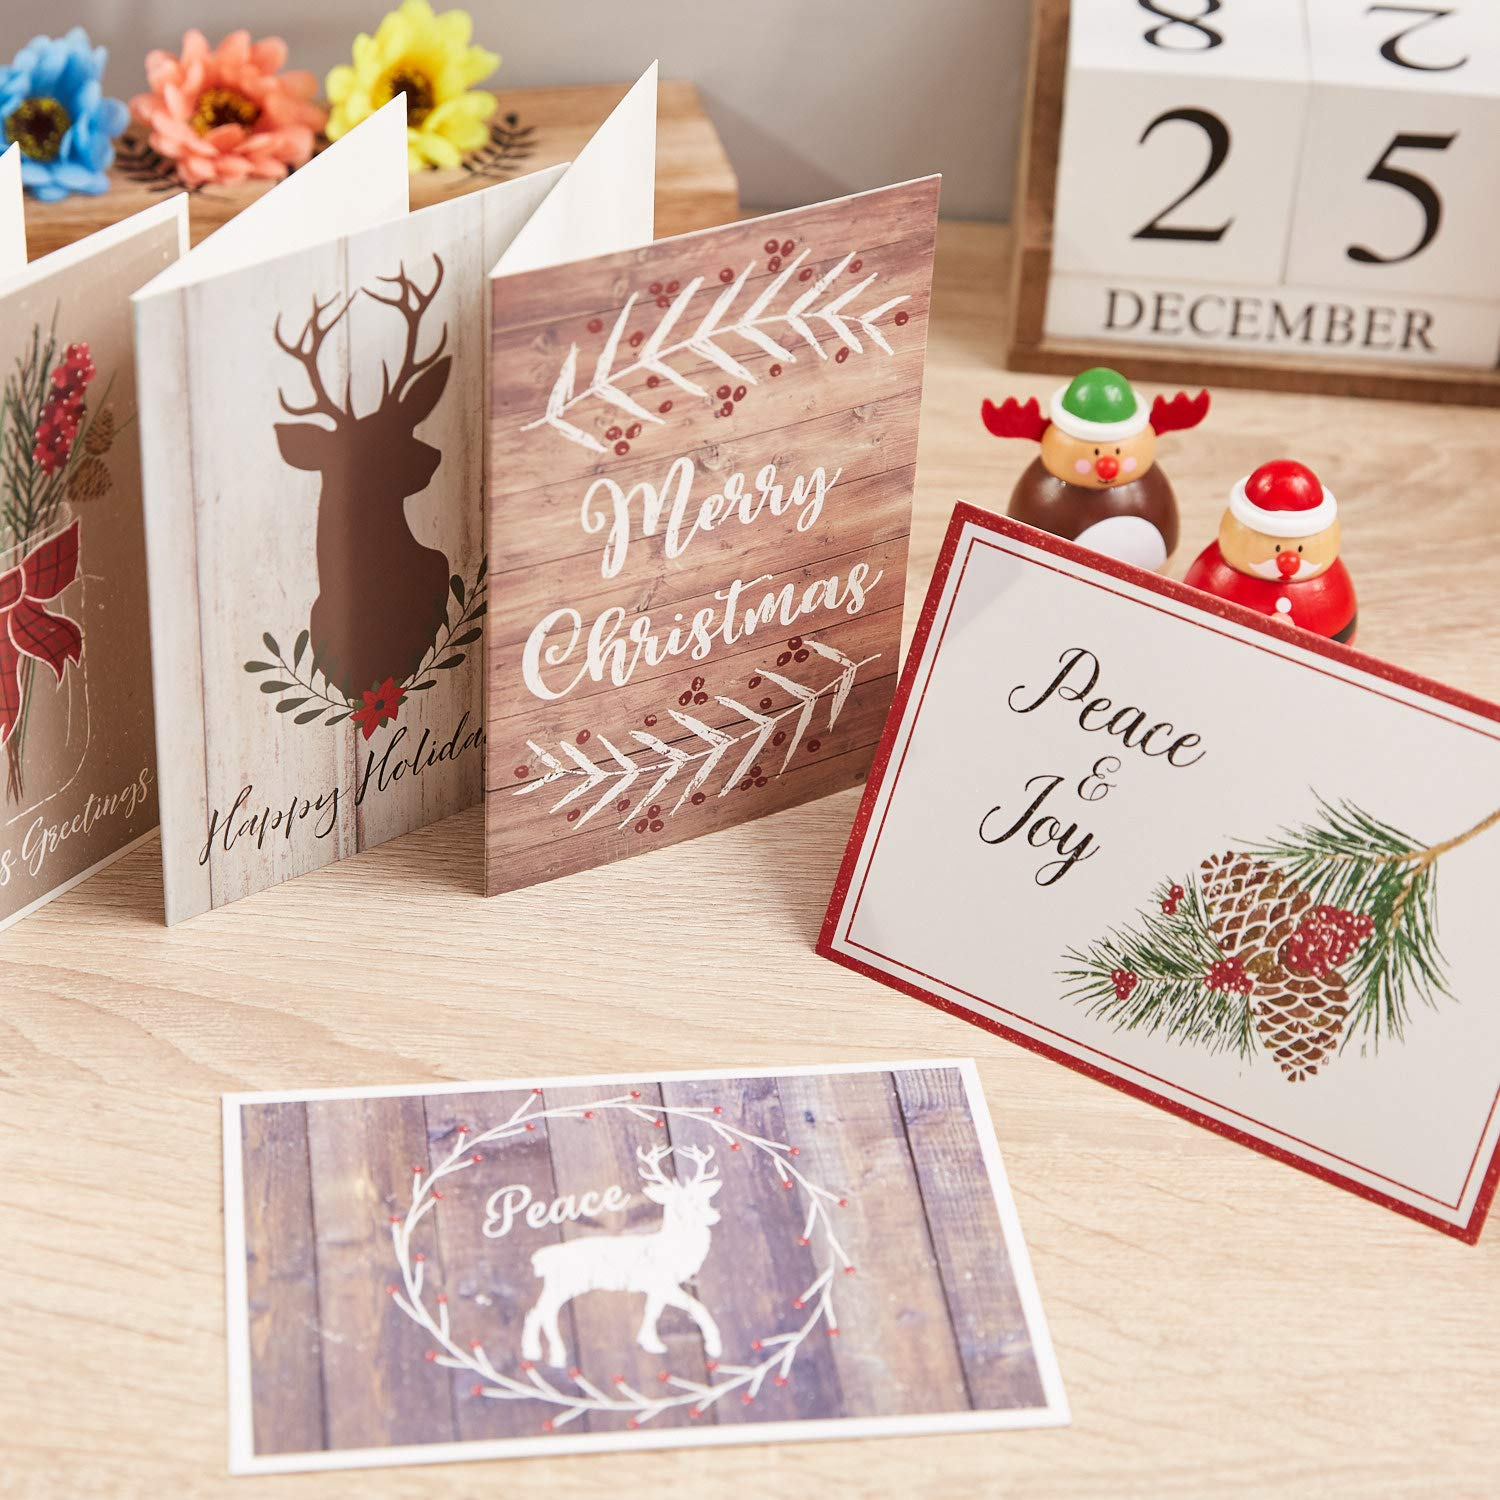 4 x 6 In, 48 Pack 6 Designs Rustic Christmas Cards Assortment with Envelopes